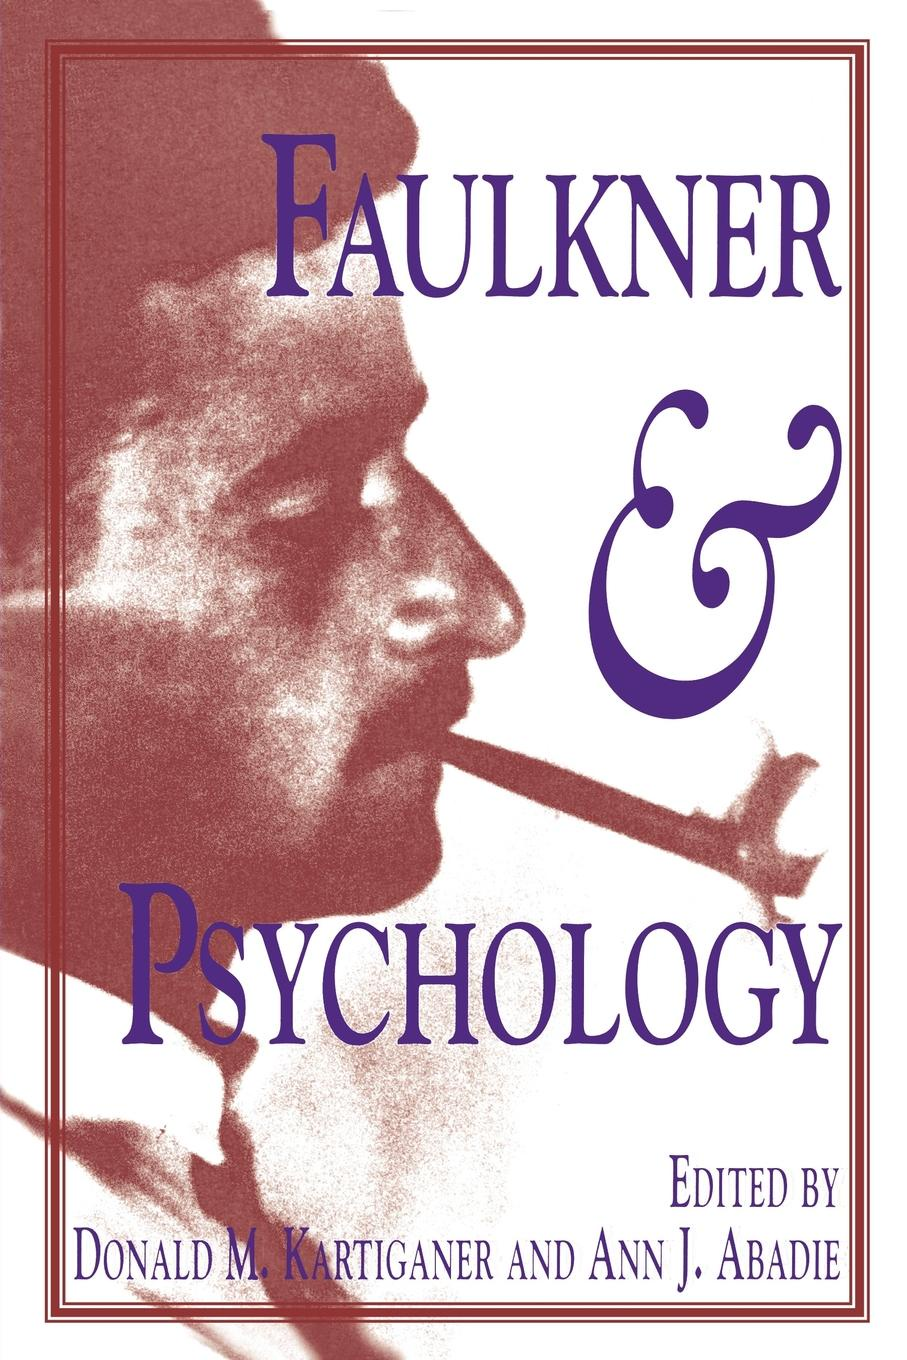 William Faulkner Faulkner and Psychology faulkner william h review questions for mri